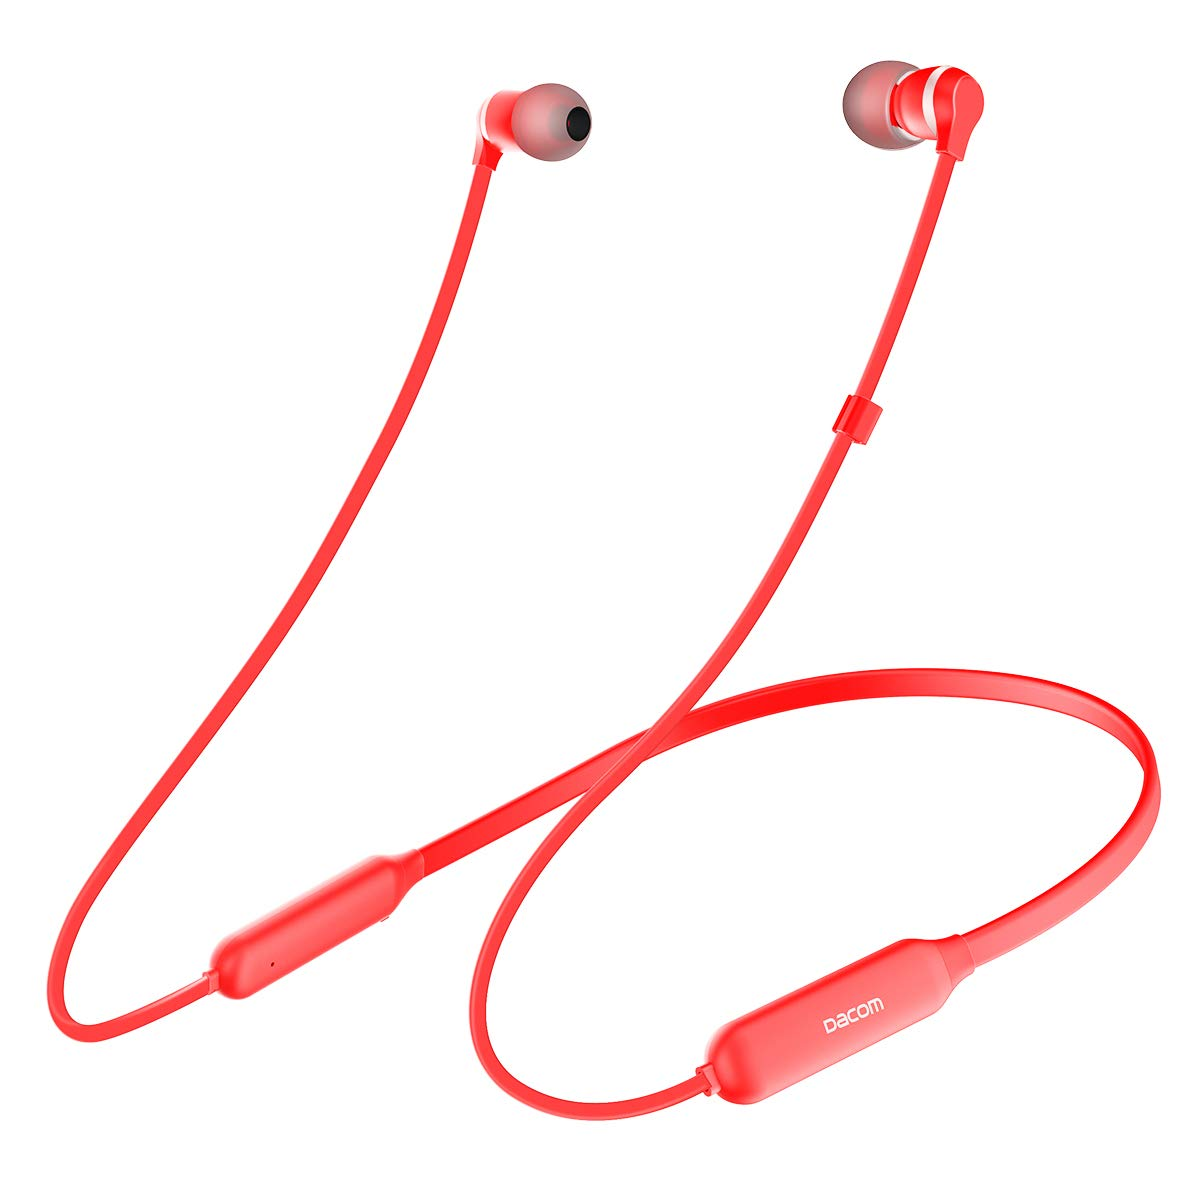 DACOM L06 Wireless Earphones Stereo Hi-Fi Bluetooth Headphones Metal Dynamic Graphene Neckband Magnetic CSR Chip with APT-X Headset for iOS and Android Cellphone red